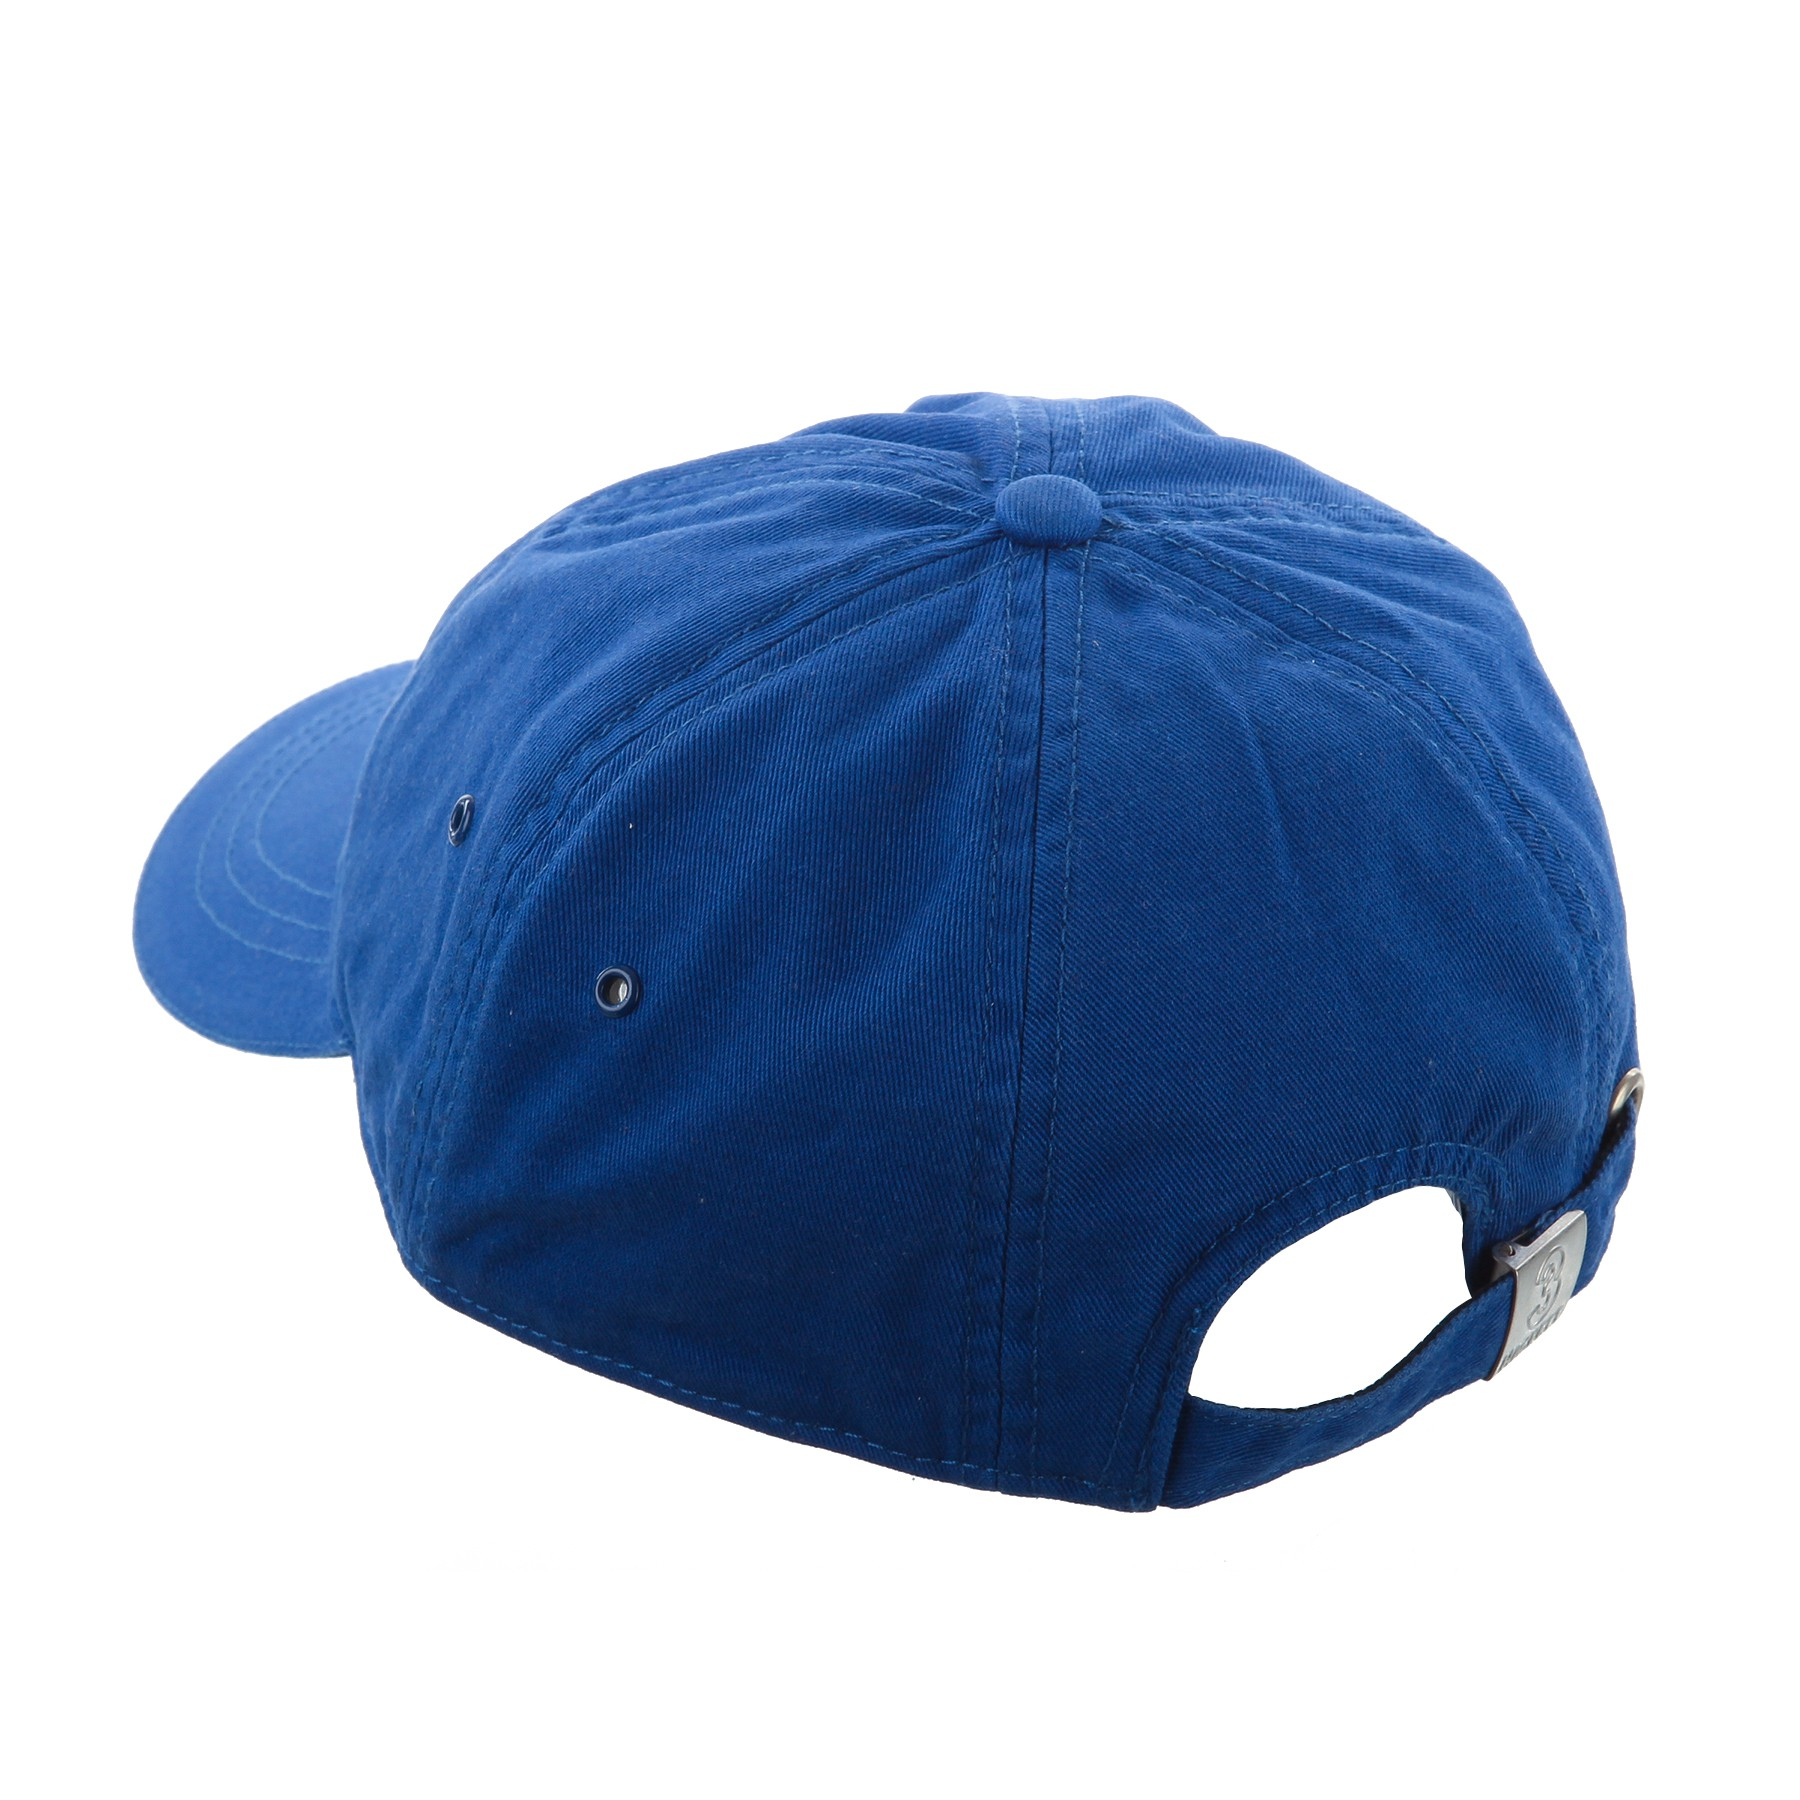 HACKETT LONDON Cap, Umfang: 55 cm, blau Bild https://cdn03.plentymarkets.com/zsy4vjx32p87/item/images/4956/full/HM040661-ama-551-ama-02.JPG